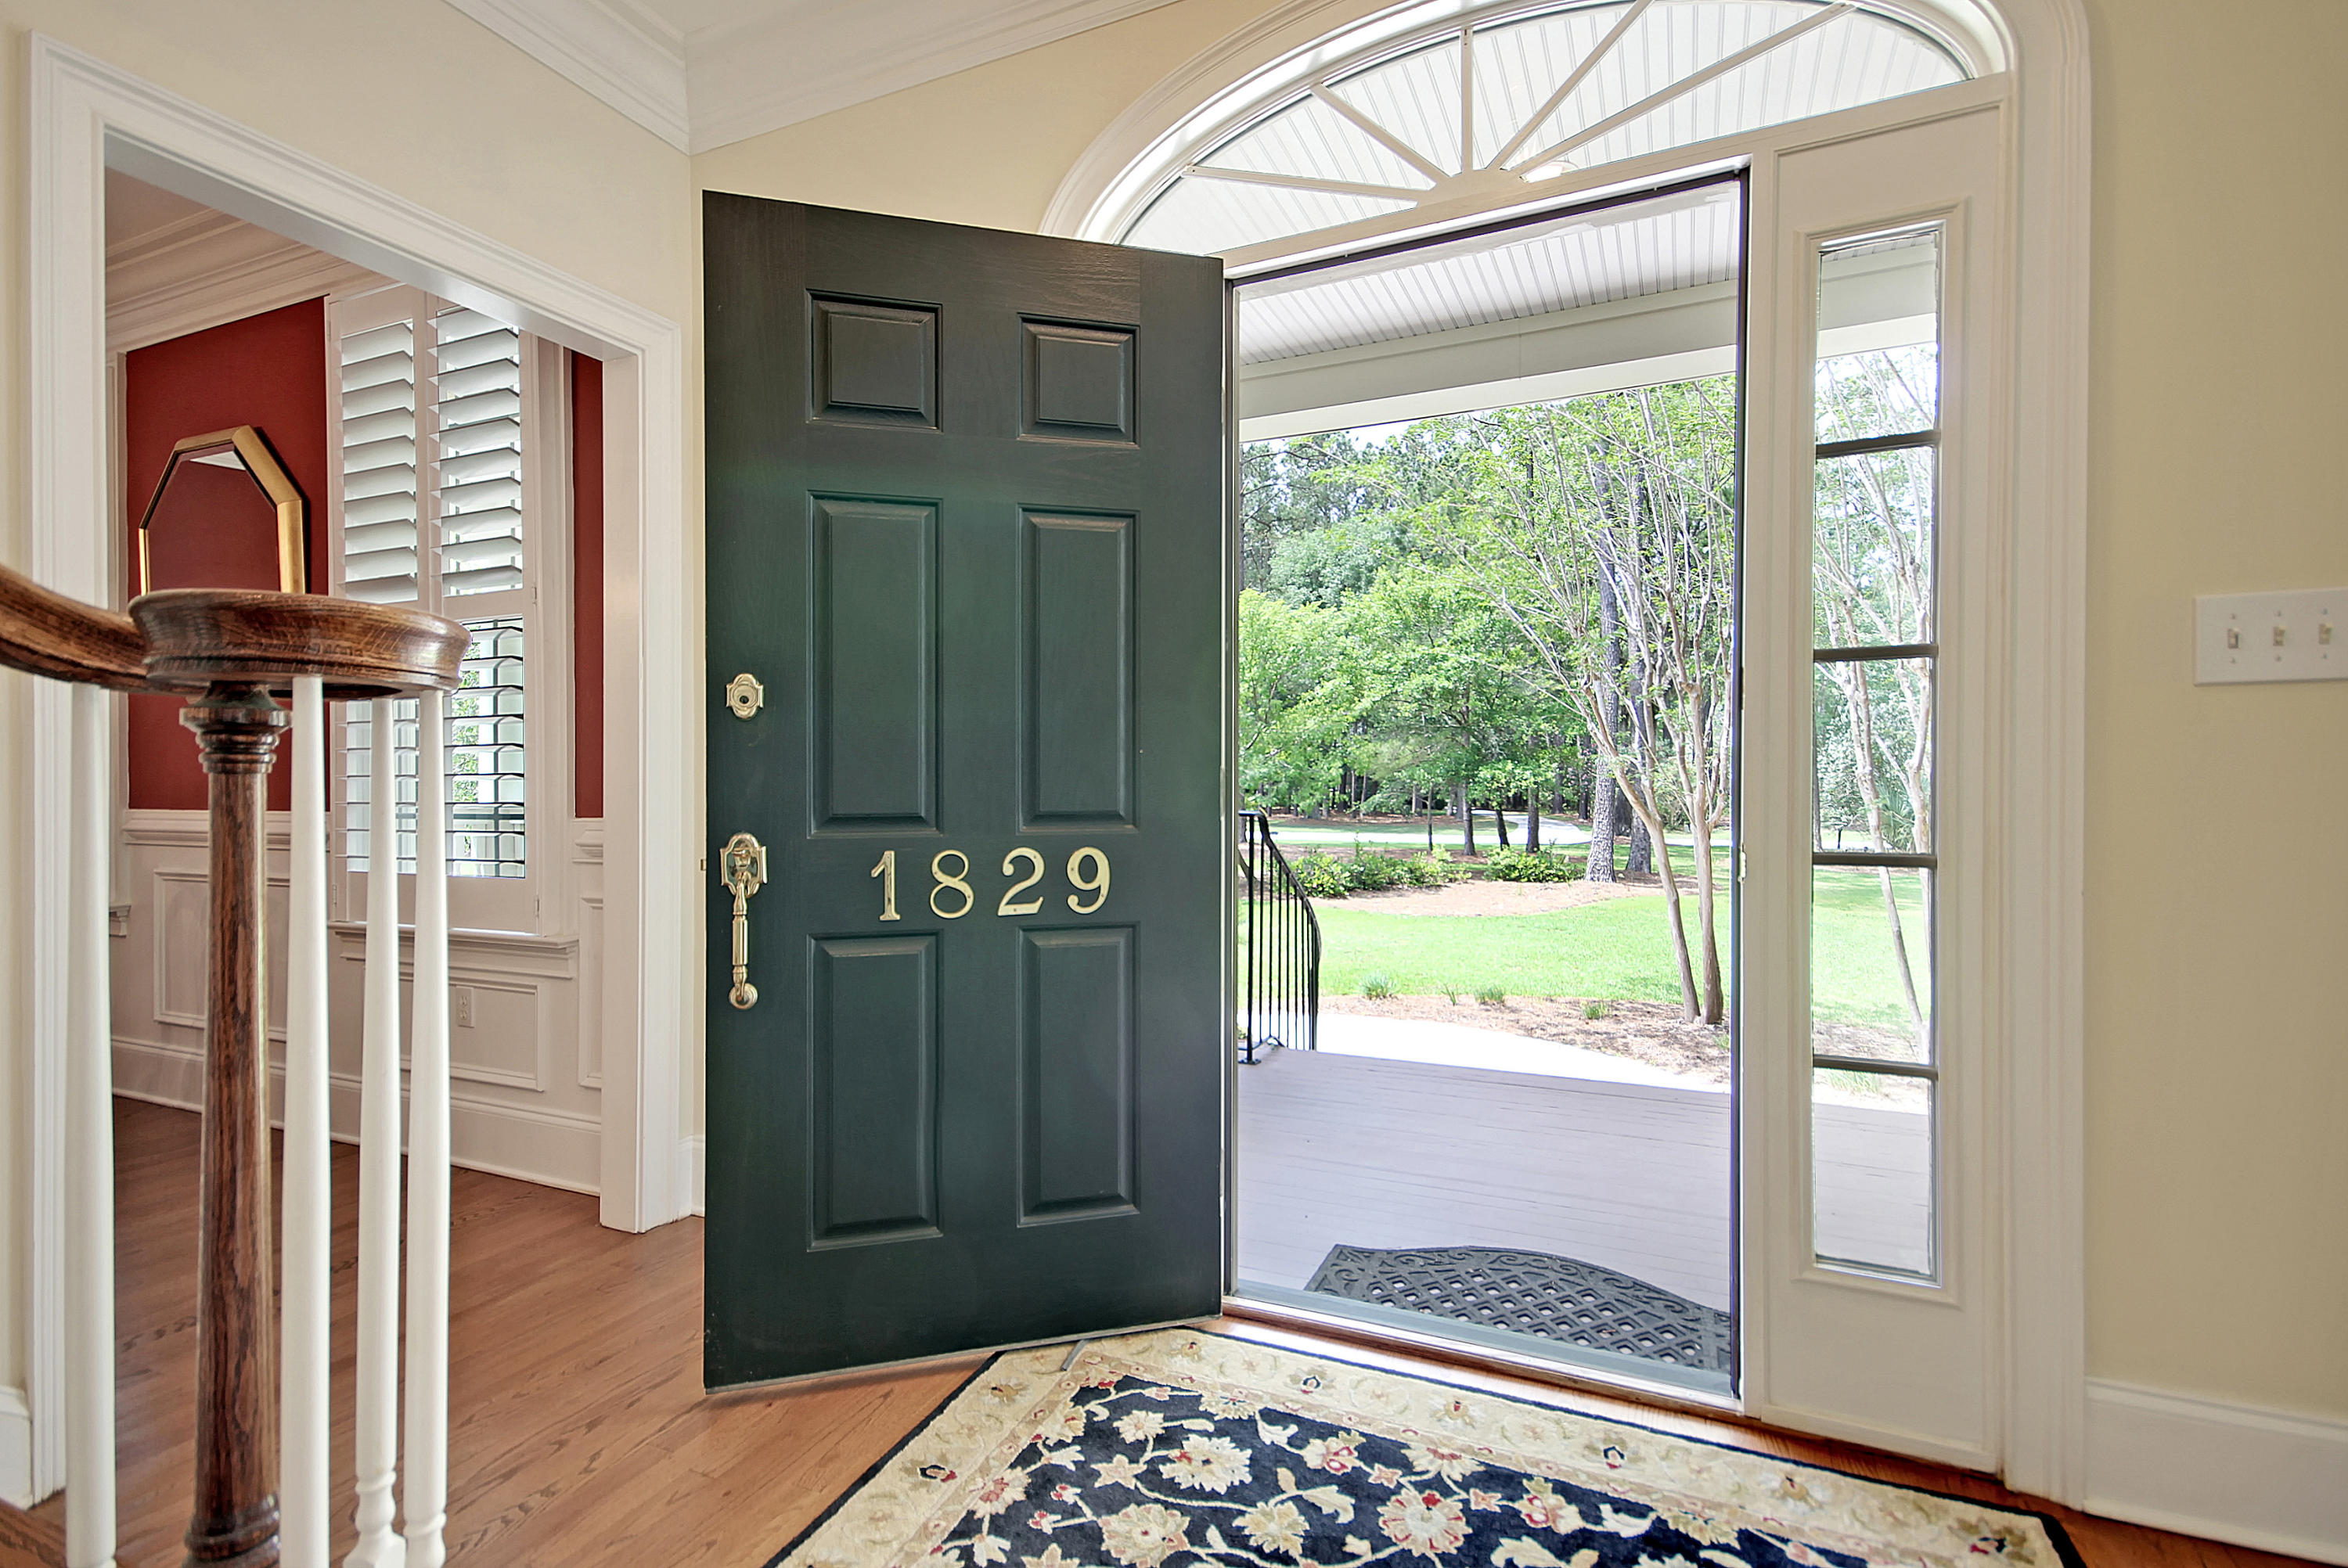 Dunes West Homes For Sale - 1829 Shell Ring, Mount Pleasant, SC - 29